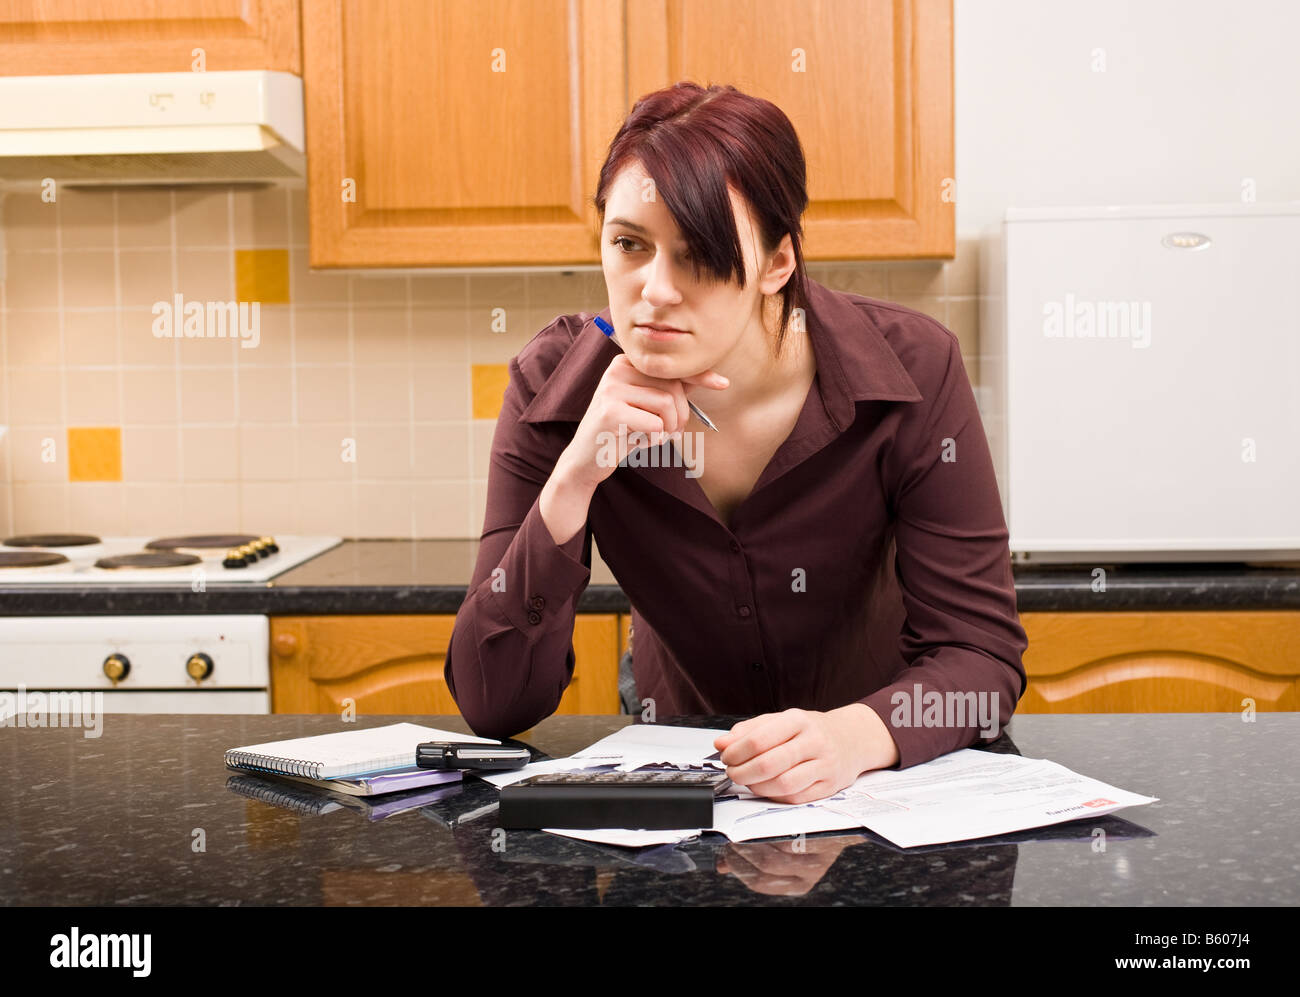 Young woman worried about household finances and budget with bills and calculator MR PR - Stock Image